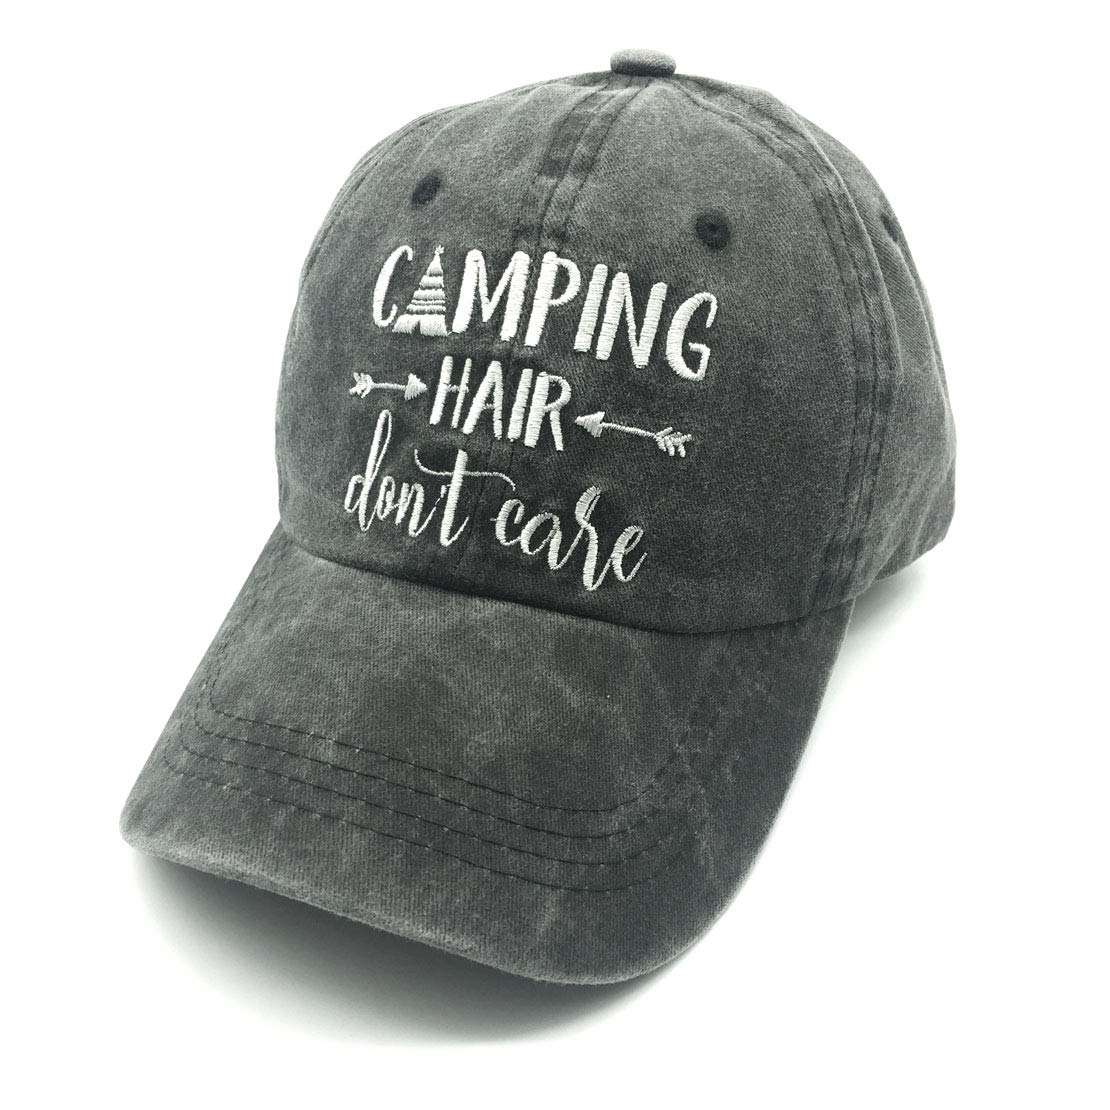 Waldeal Embroidered Camping Hair Don't Care Vintage Washed Cotton Low Profile Adjustable Dad Hat Black